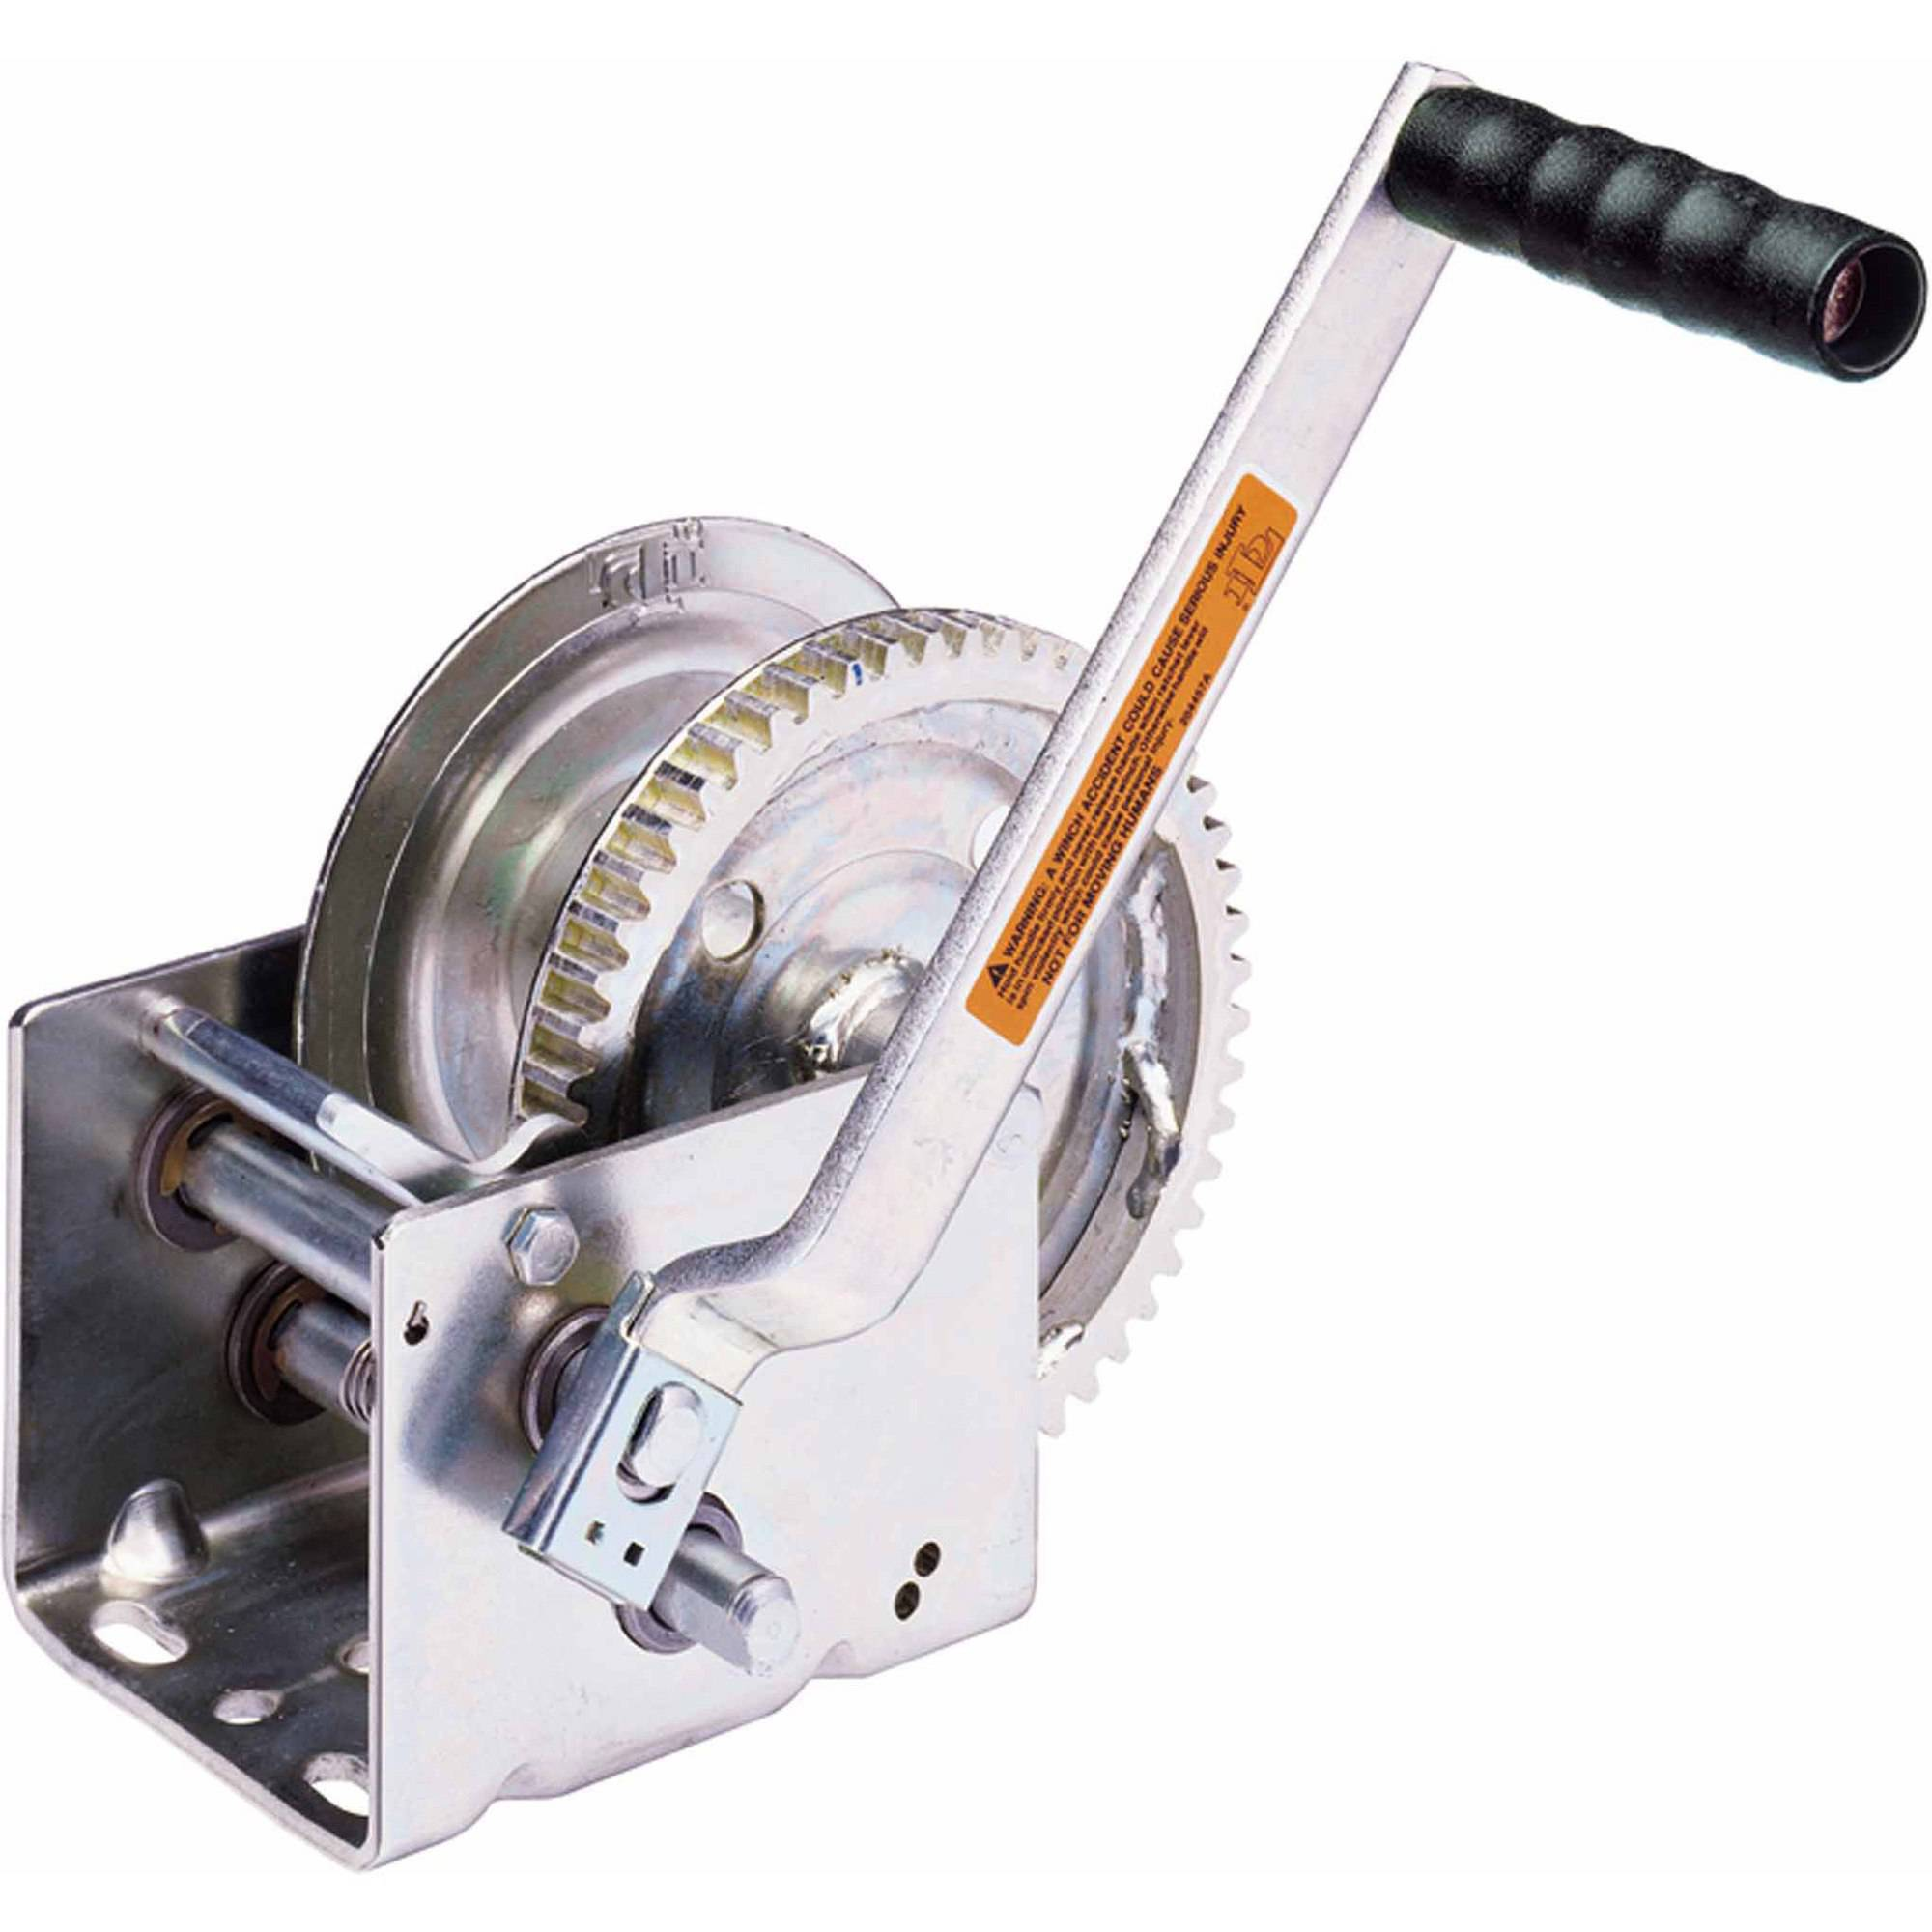 Dutton-Lainson 15502 Heavy-Duty Pulling Winch with Ratchet, 1800 lbs